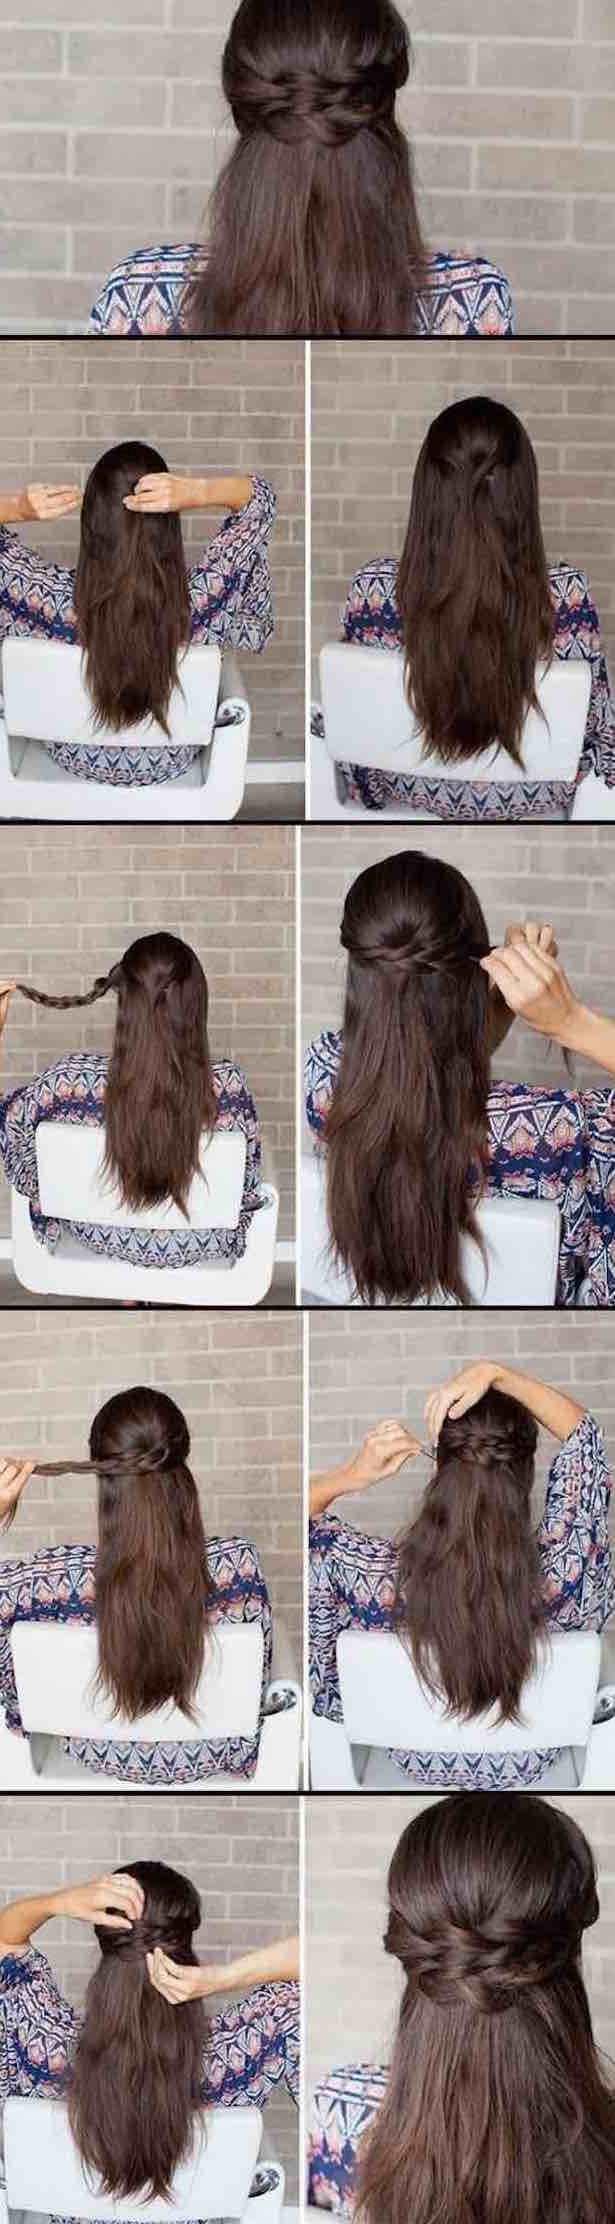 Half Up and Half Down Hairstyles for Prom - Braided Half-up how-to -Hairdos and ...